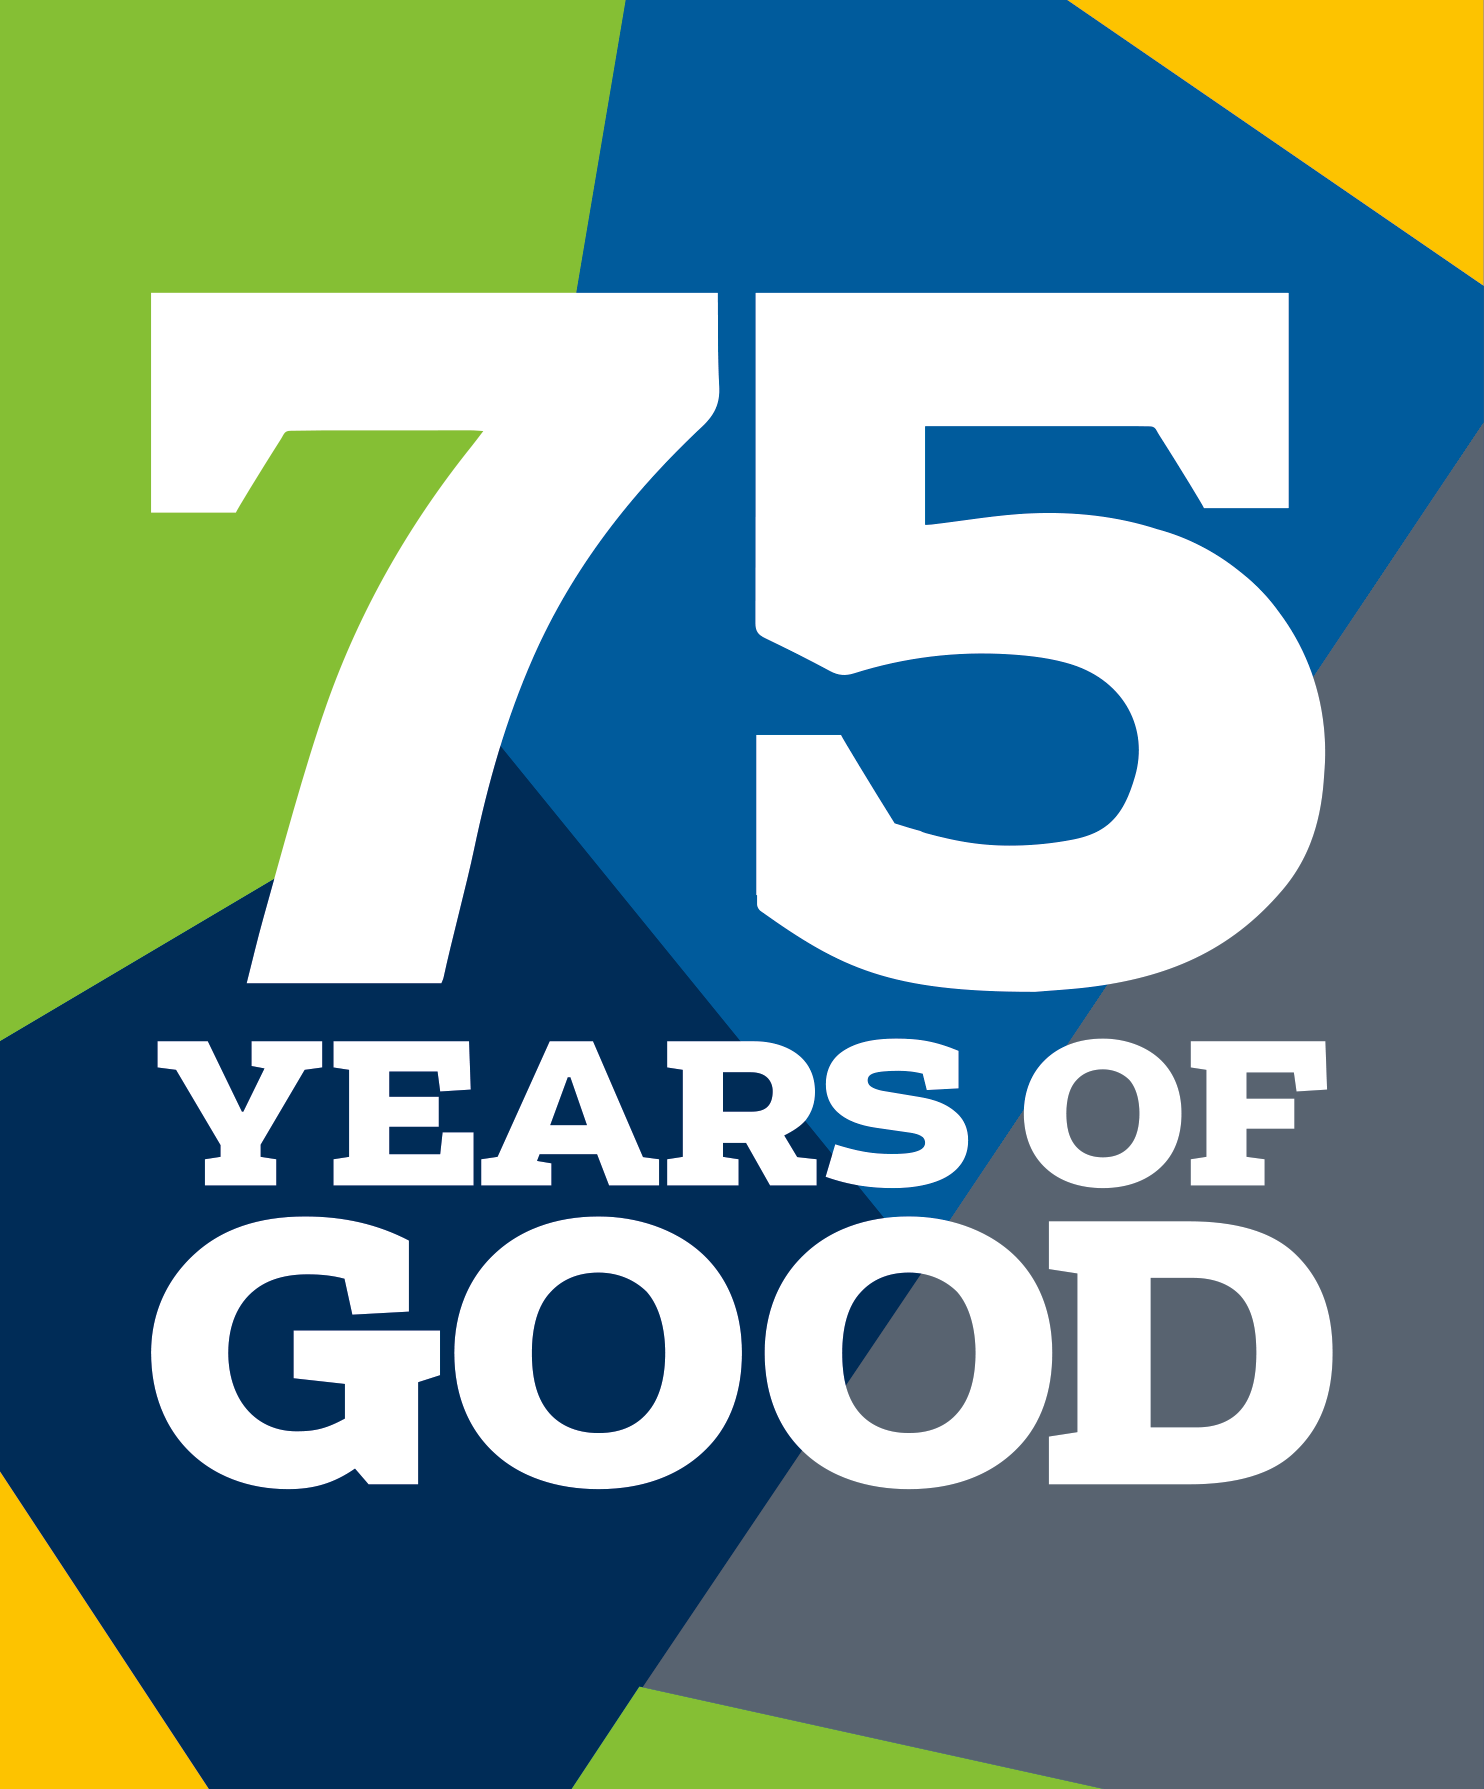 Visit our 75th Anniversary website!